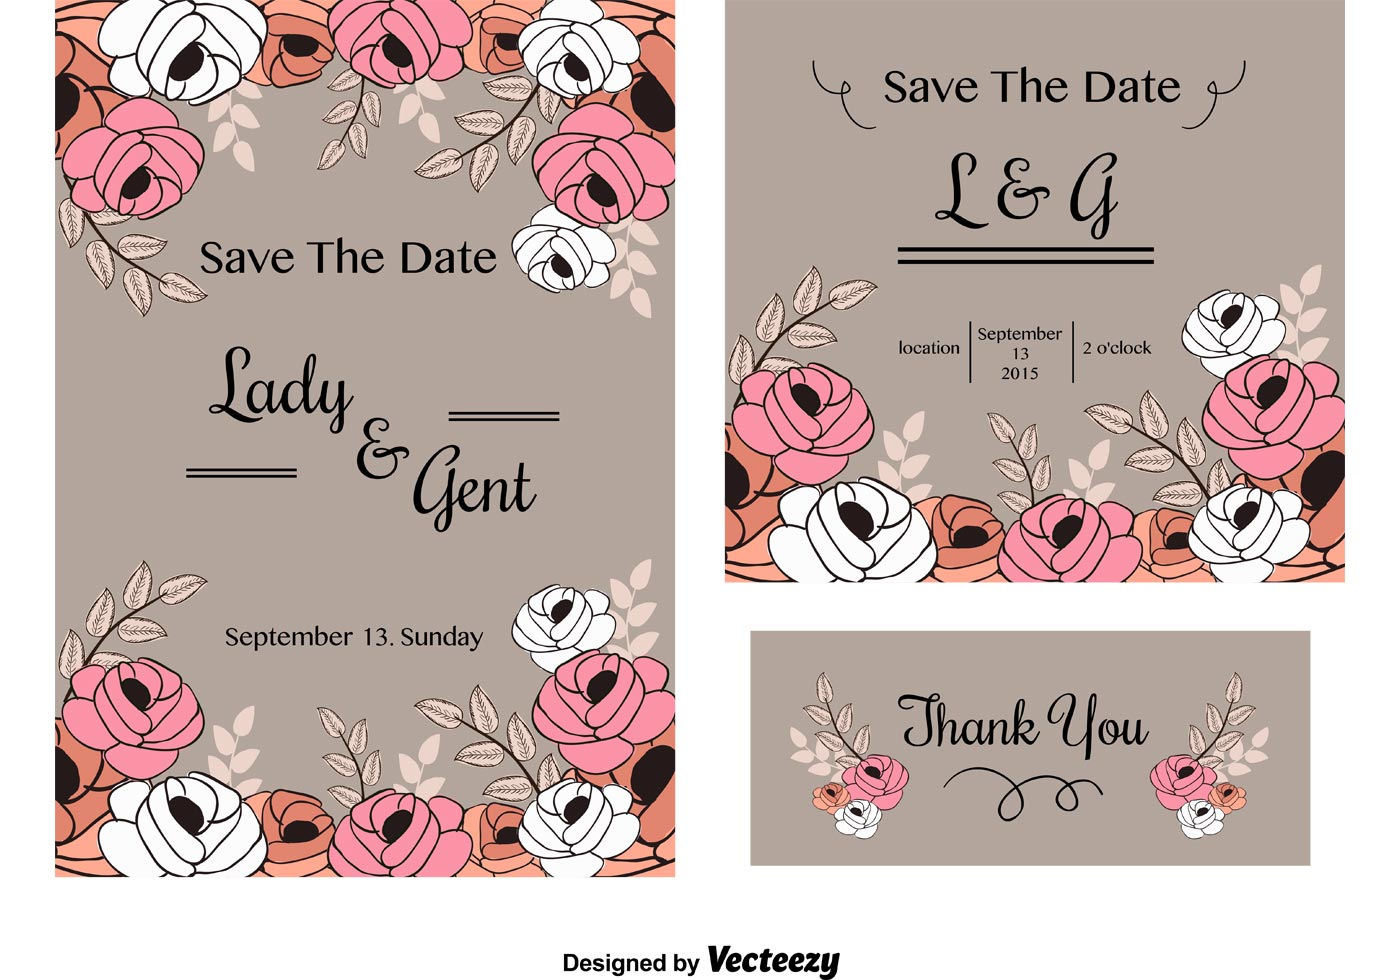 Invitation Card Design 7337 Free Downloads – Invitation Card Design Wedding